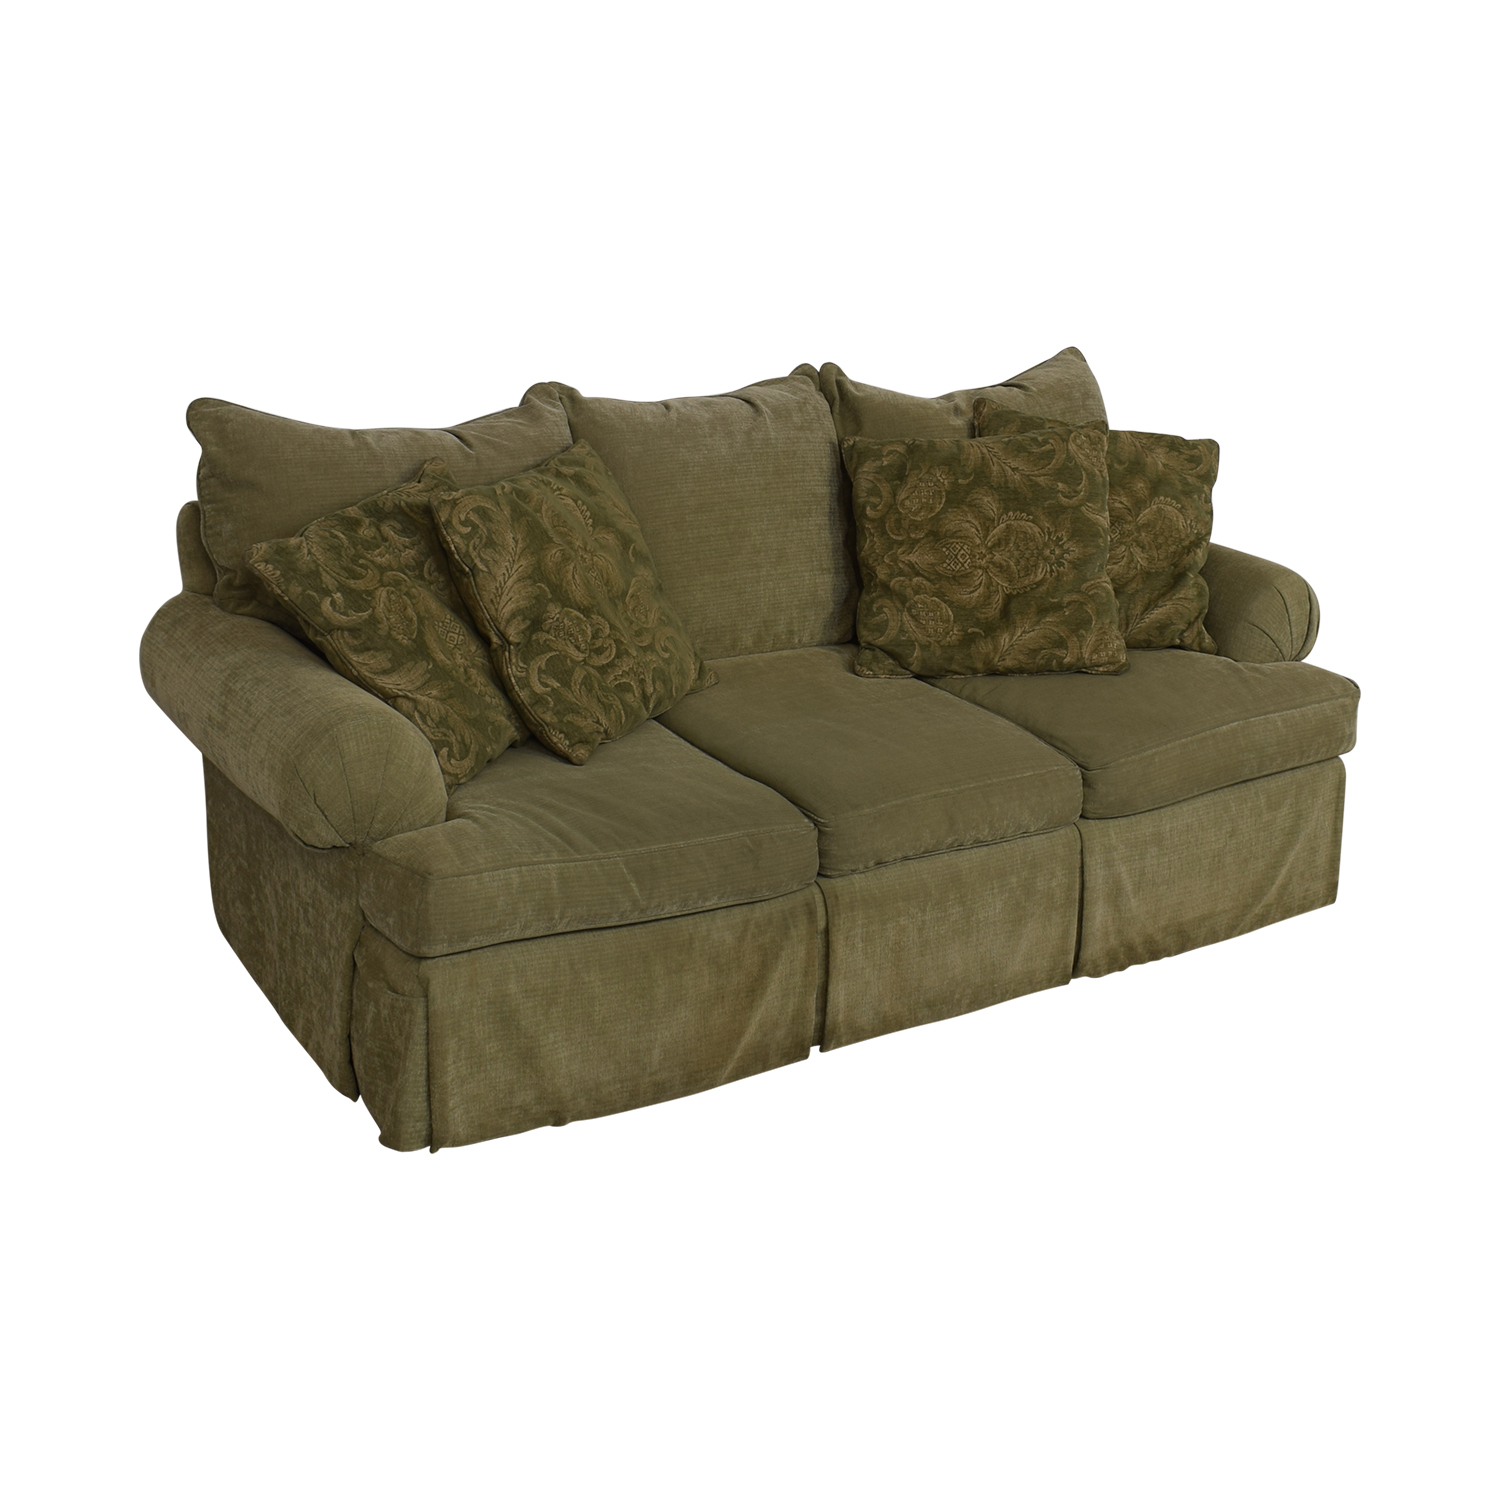 Bernhardt Three Cushion Sofa / Classic Sofas